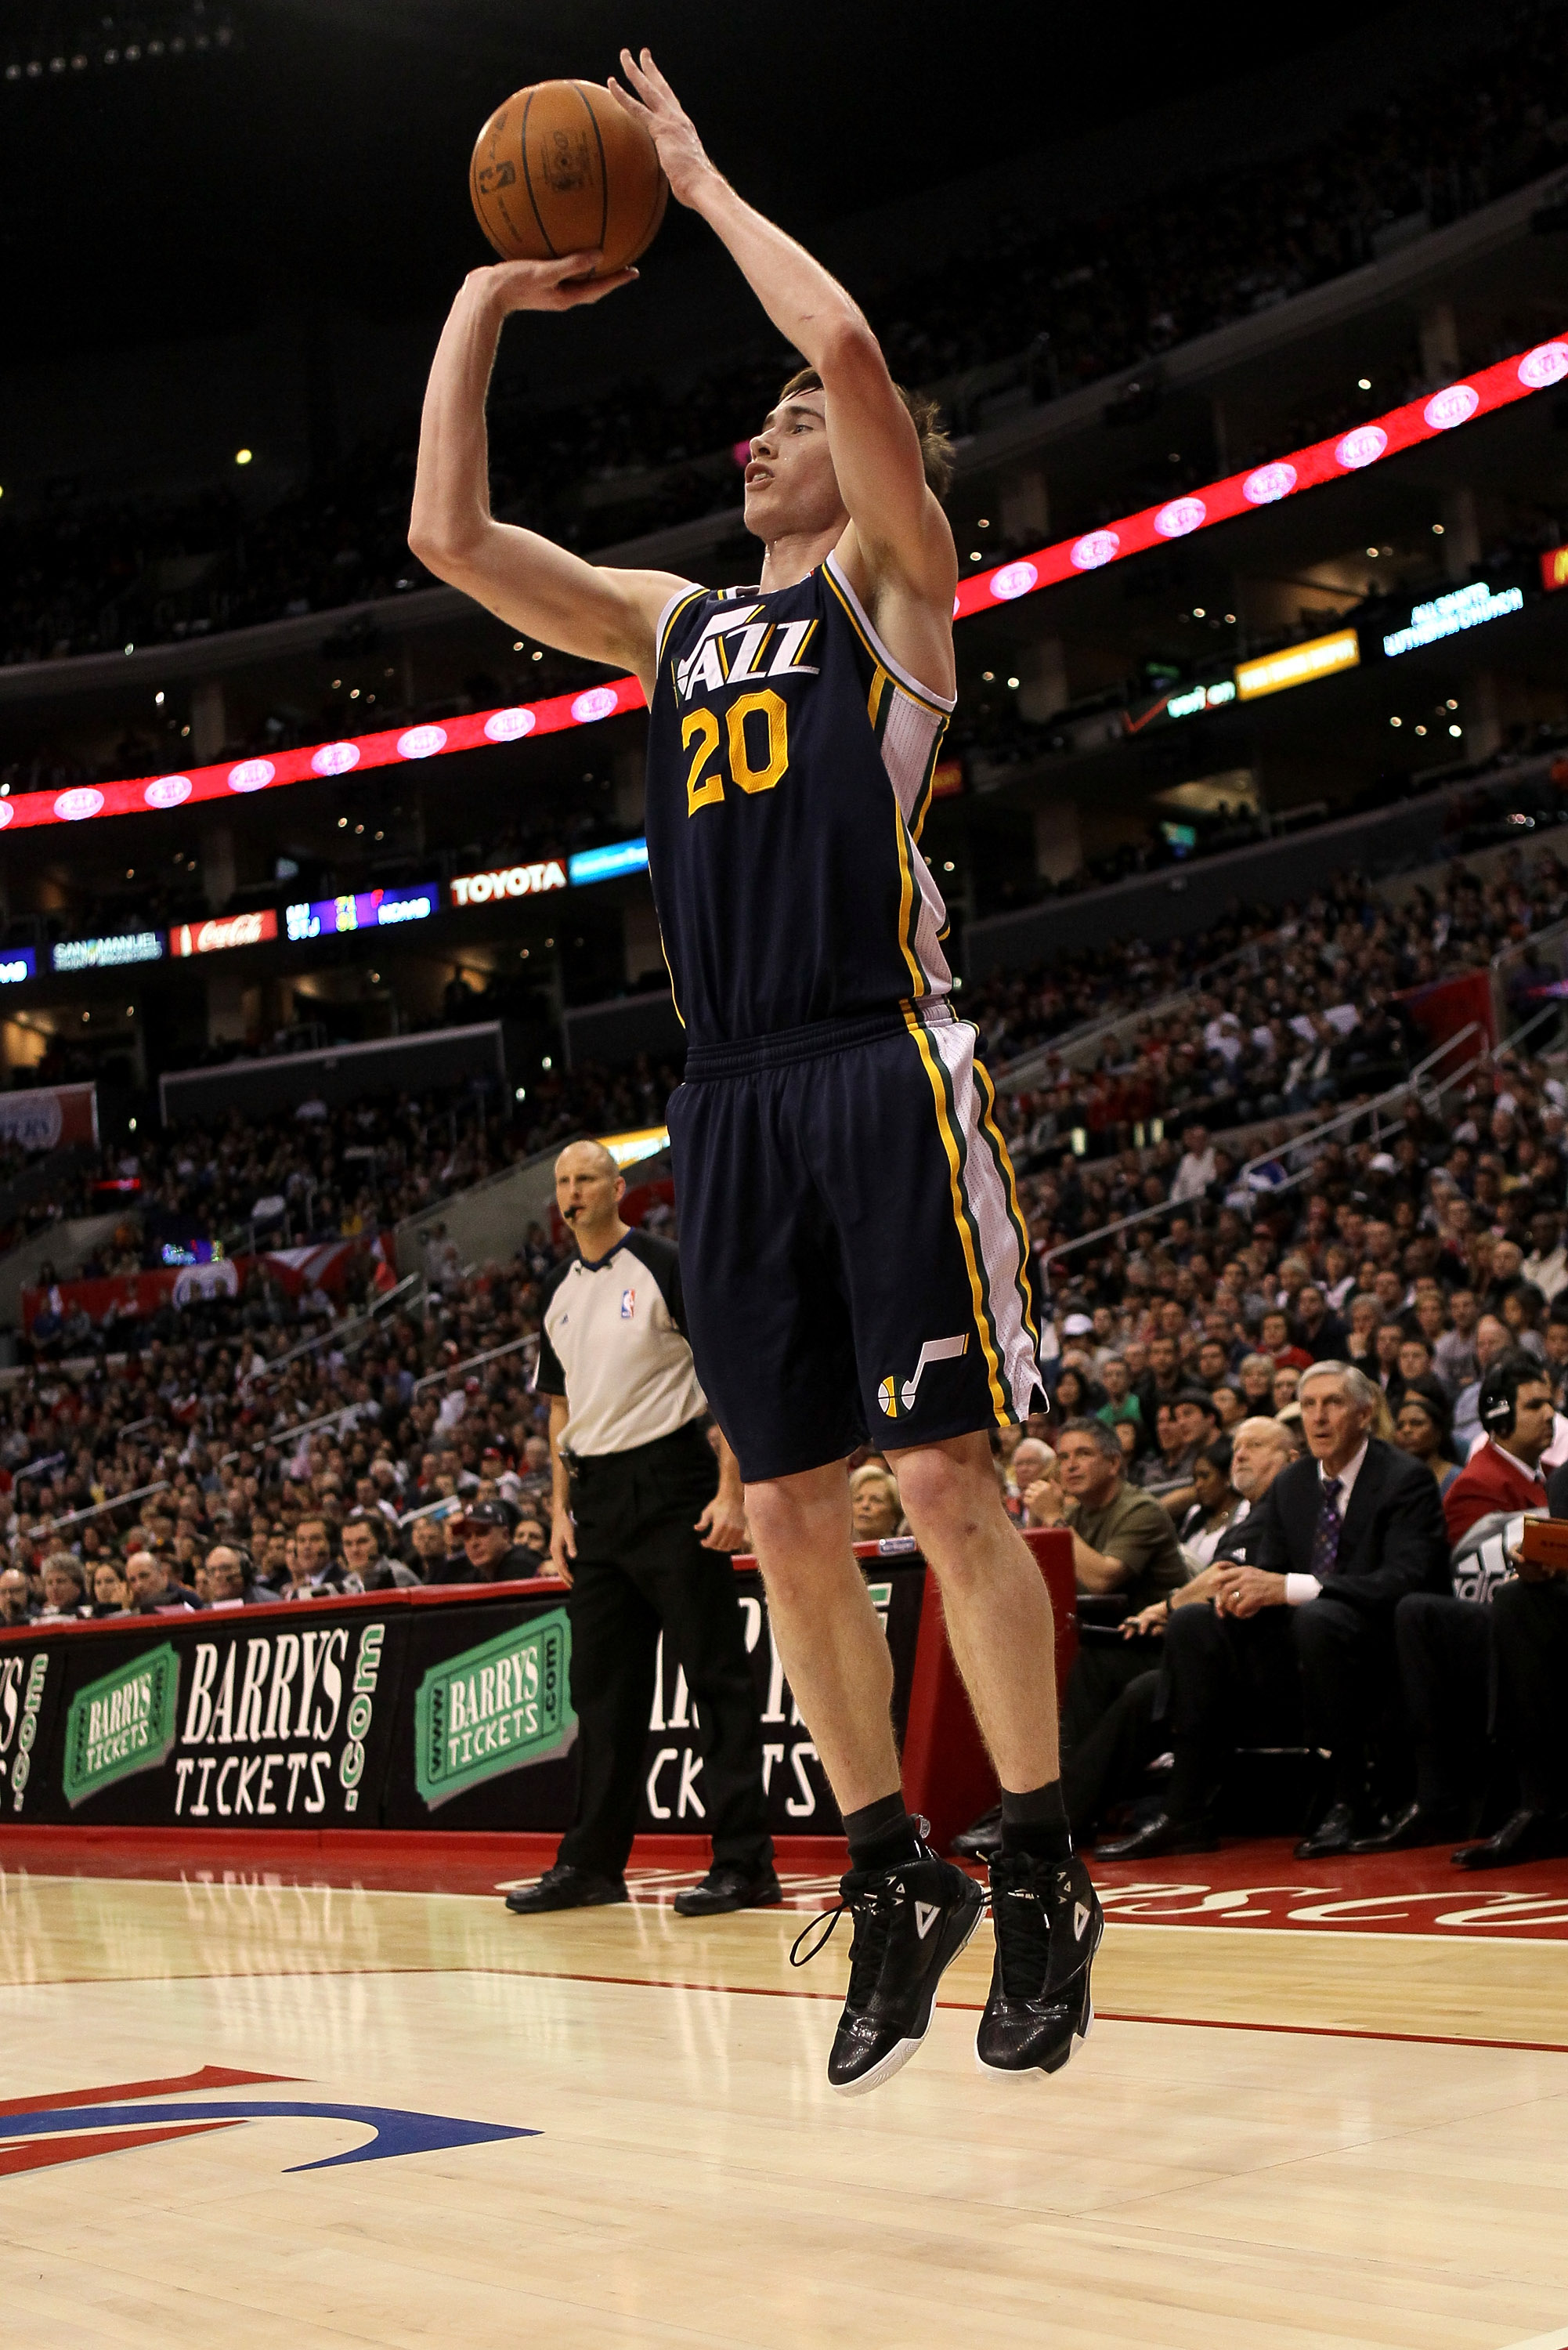 LOS ANGELES, CA - DECEMBER 29:  Gordon Hayward #20 of the Utah Jazz shoots against the Los Angeles Clippers at Staples Center on December 29, 2010 in Los Angeles, California.   The Jazz won 103-85.  NOTE TO USER: User expressly acknowledges and agrees tha